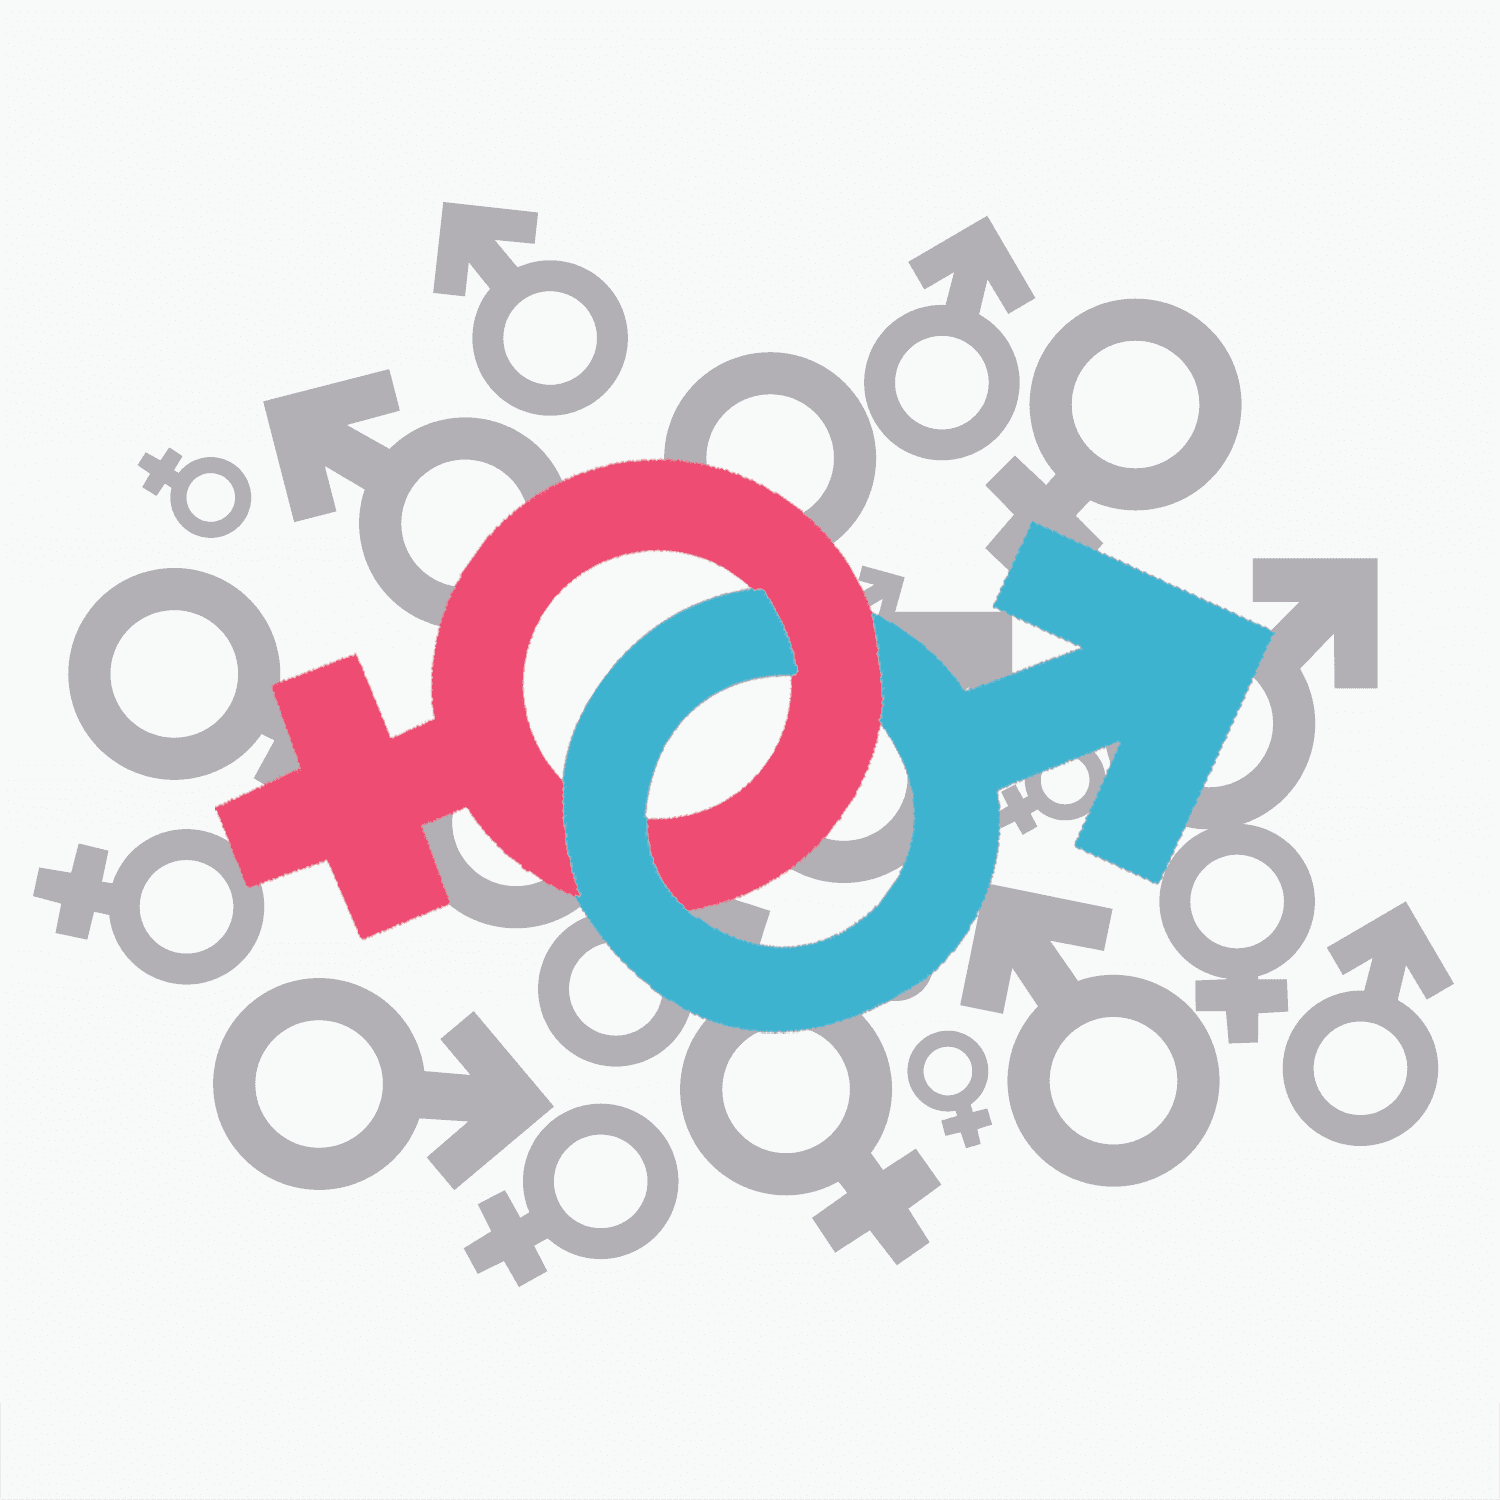 This image is comprised of the two symbols for gender.